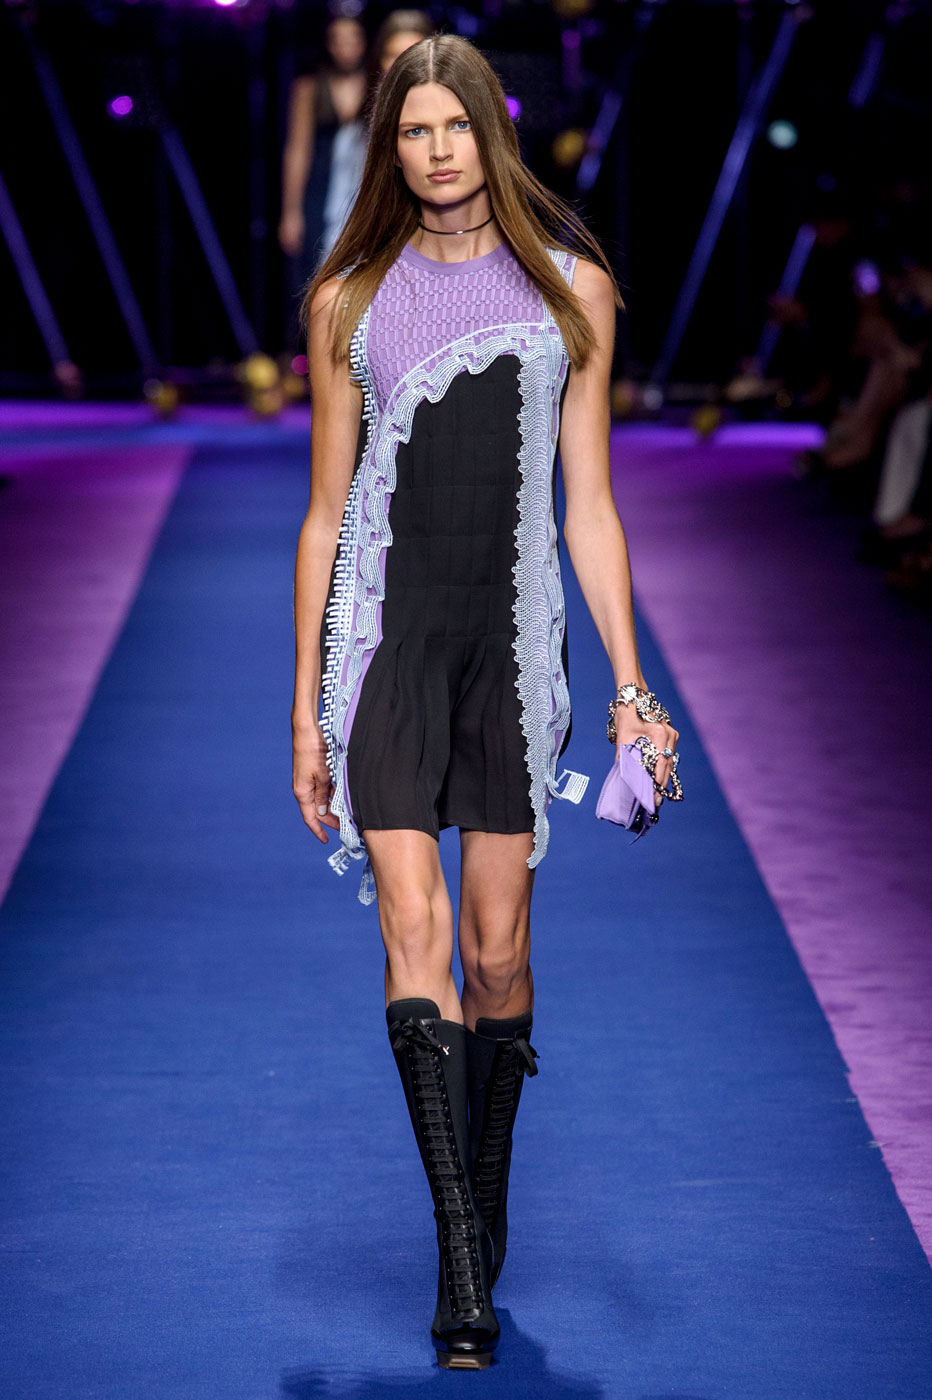 Donatella Versace Diversifies Her Aesthetic for Spring/Summer 2017